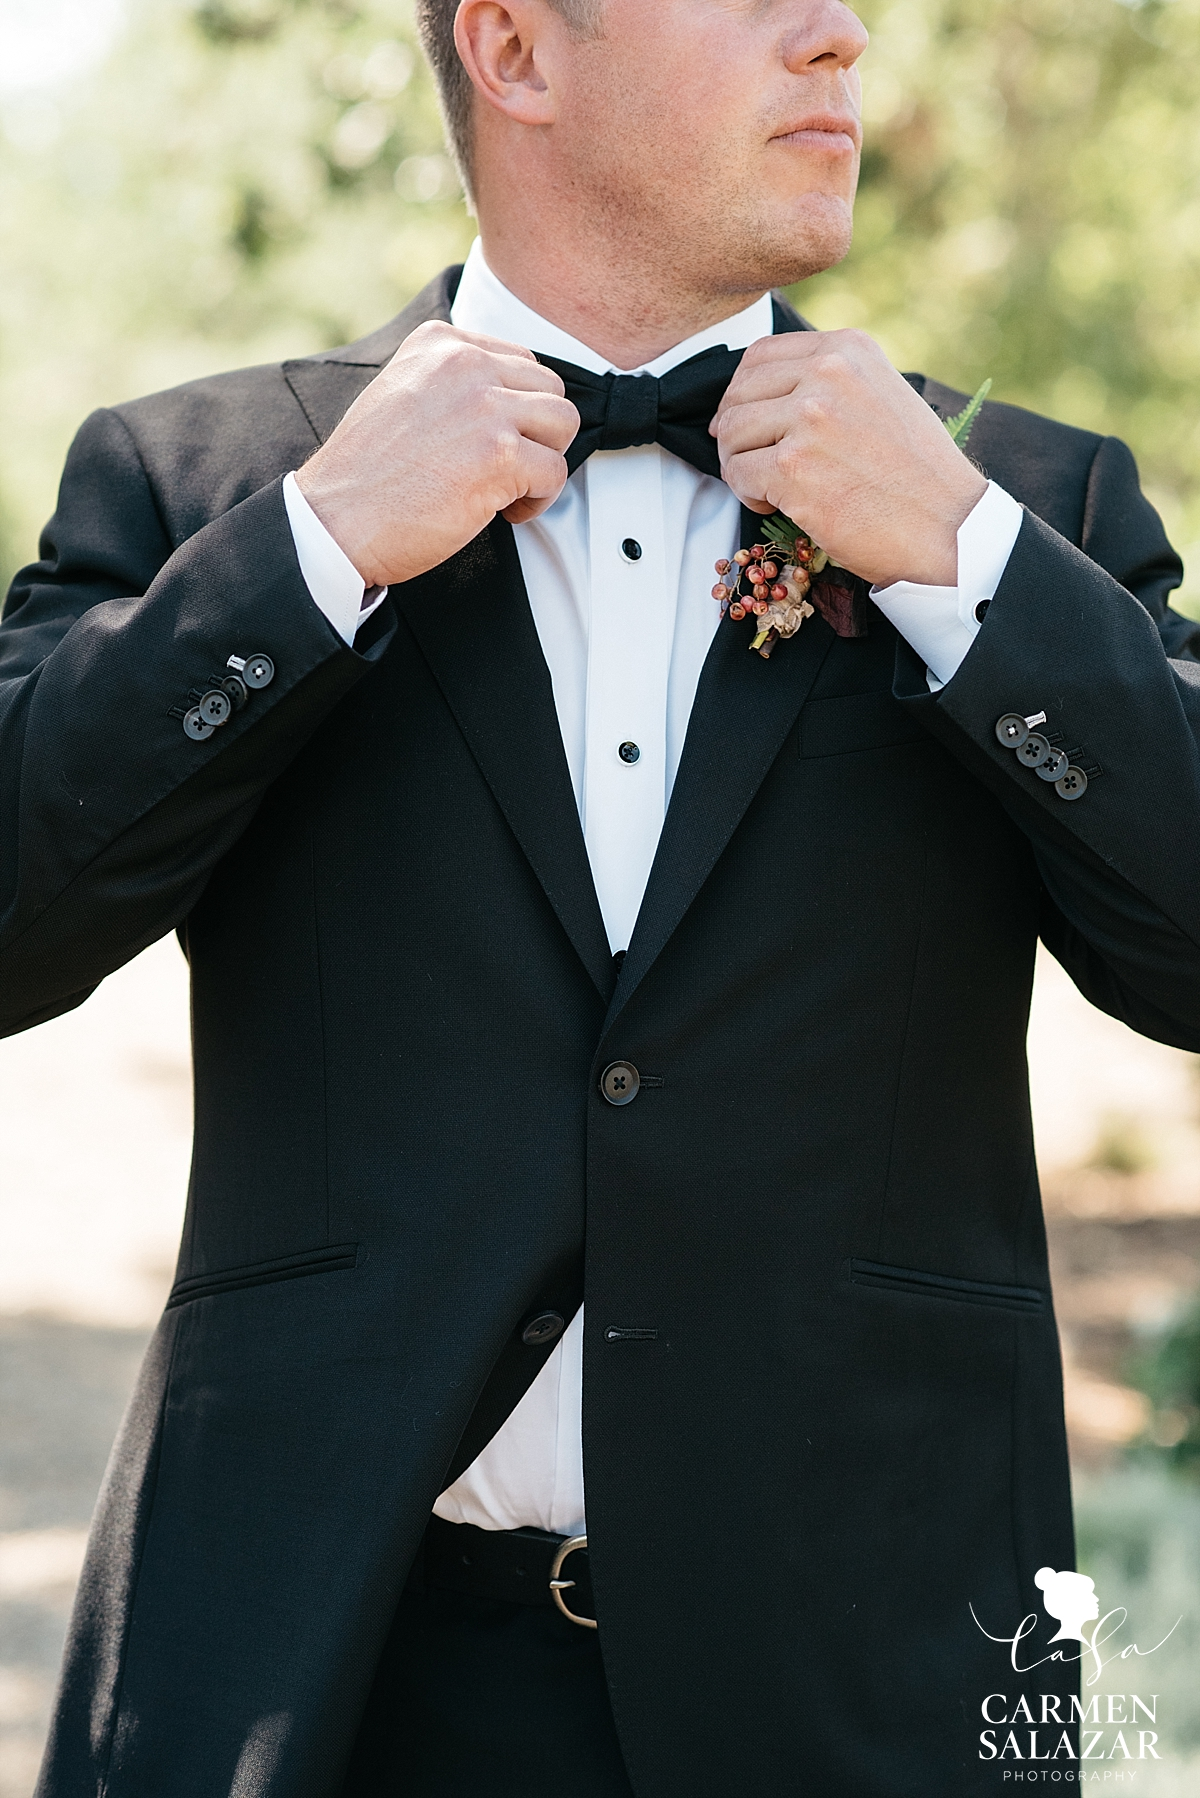 Groom getting ready for first look at bride